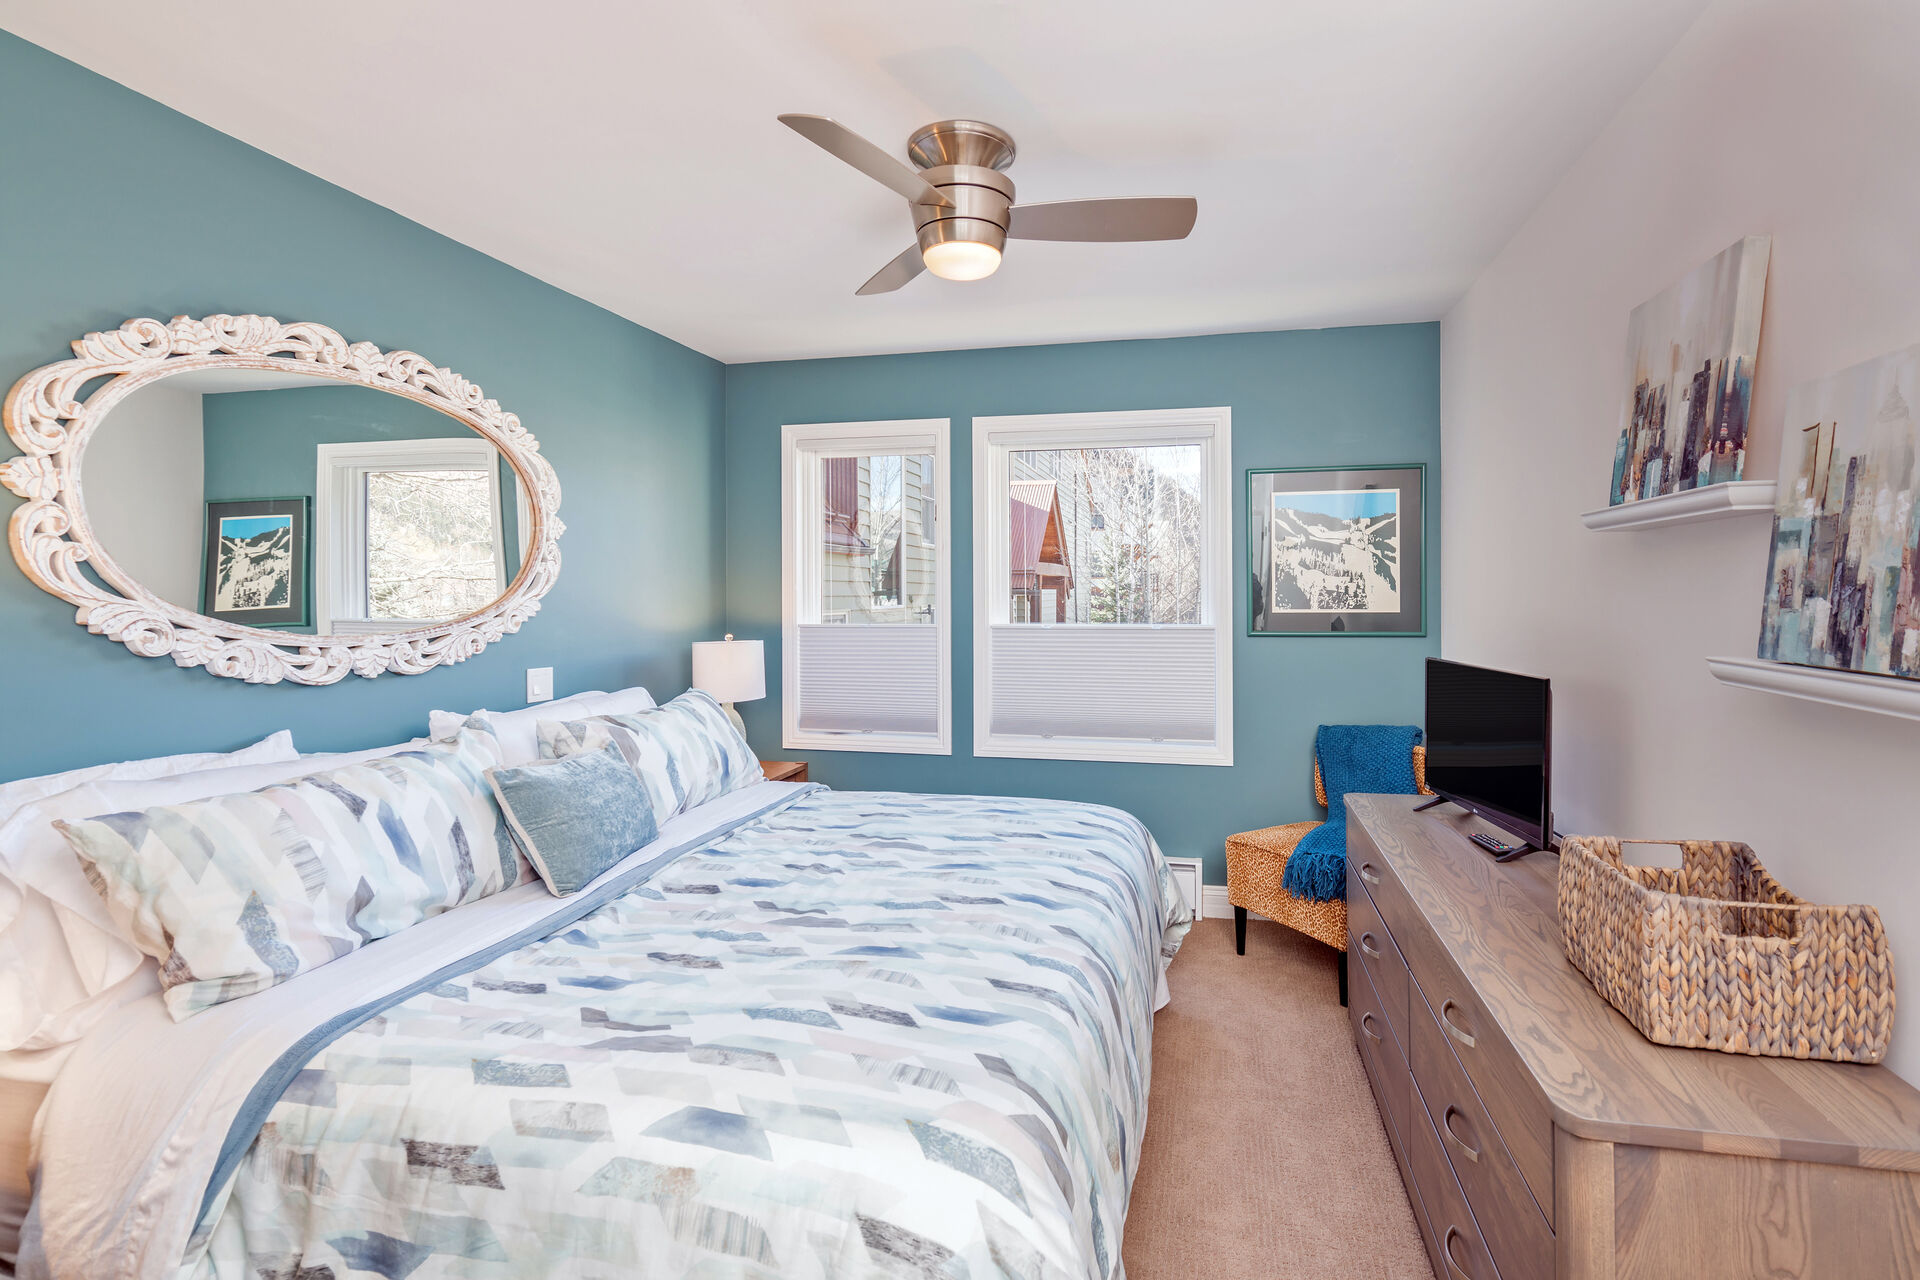 Bedroom with Large Bed, Ceiling Fan, Drawer Dresser, TV, and Chair